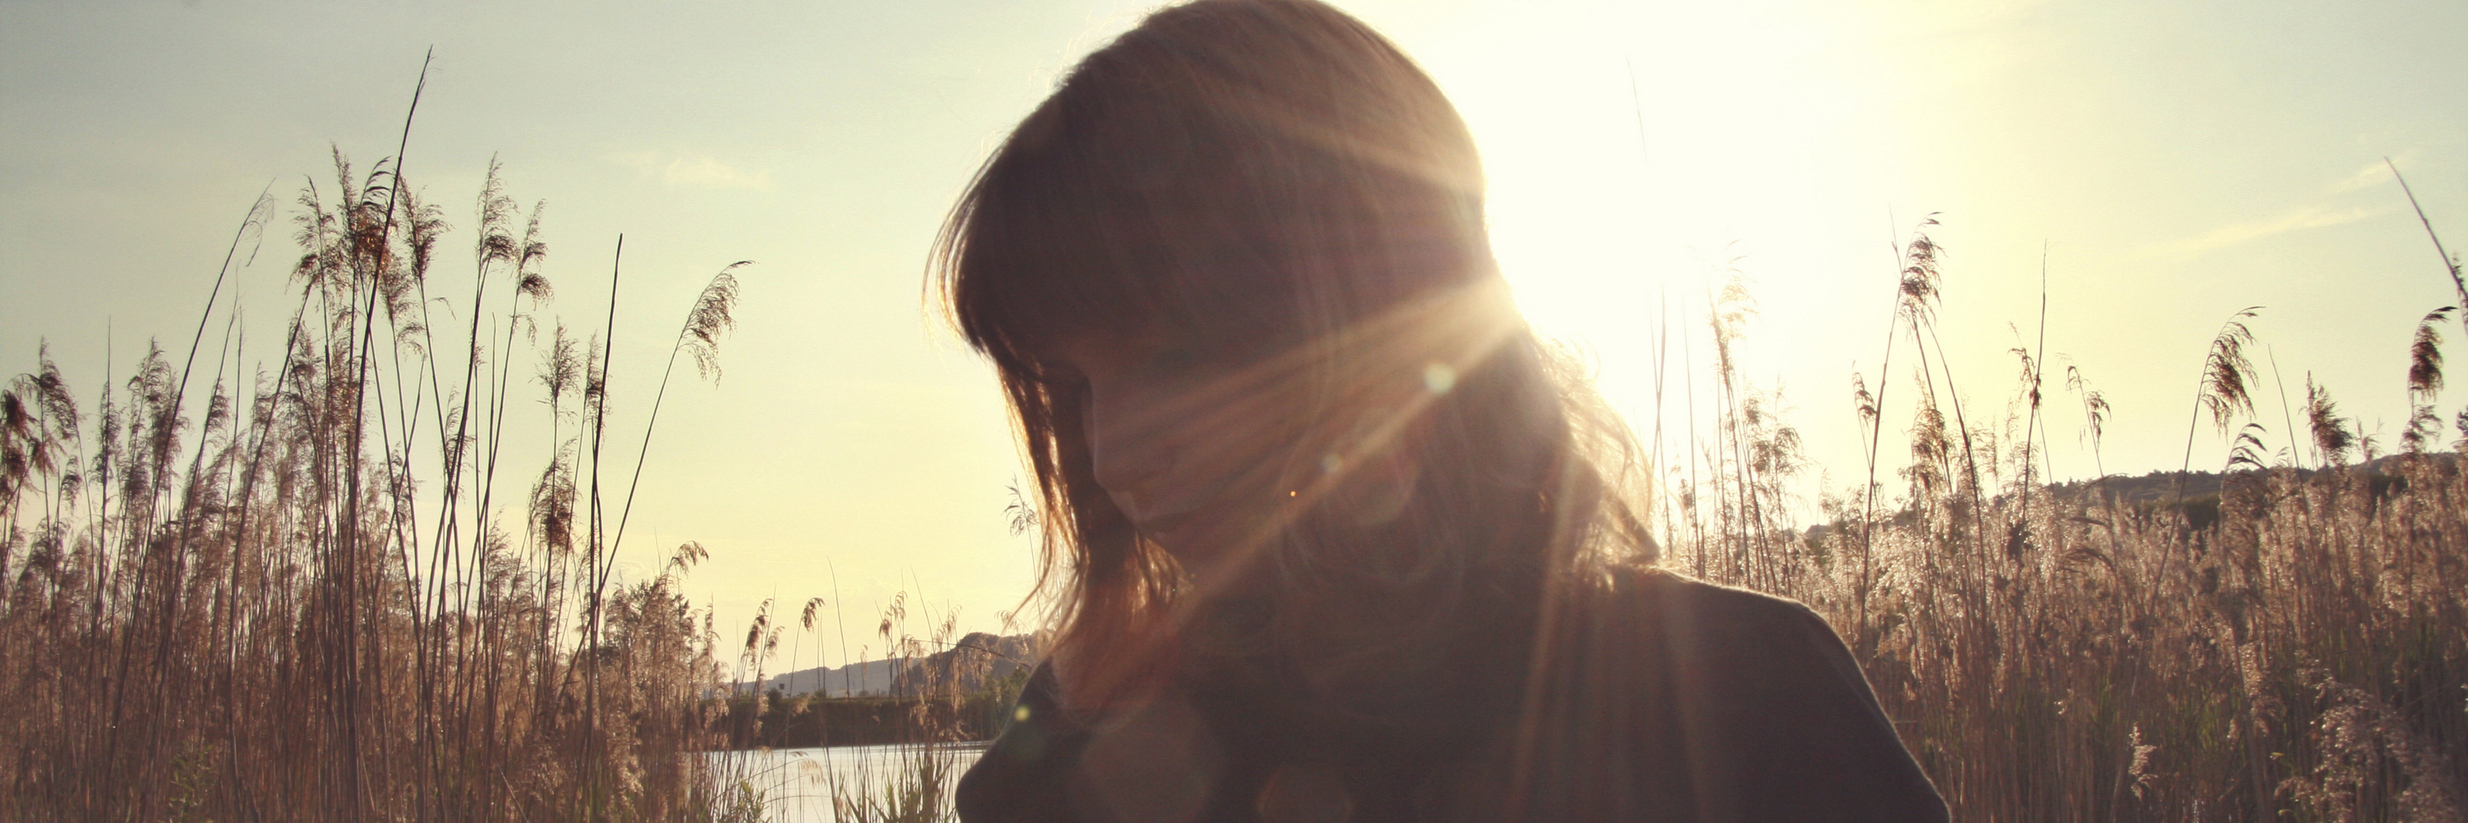 woman mostly silhouetted by sunlight in field with muted colours